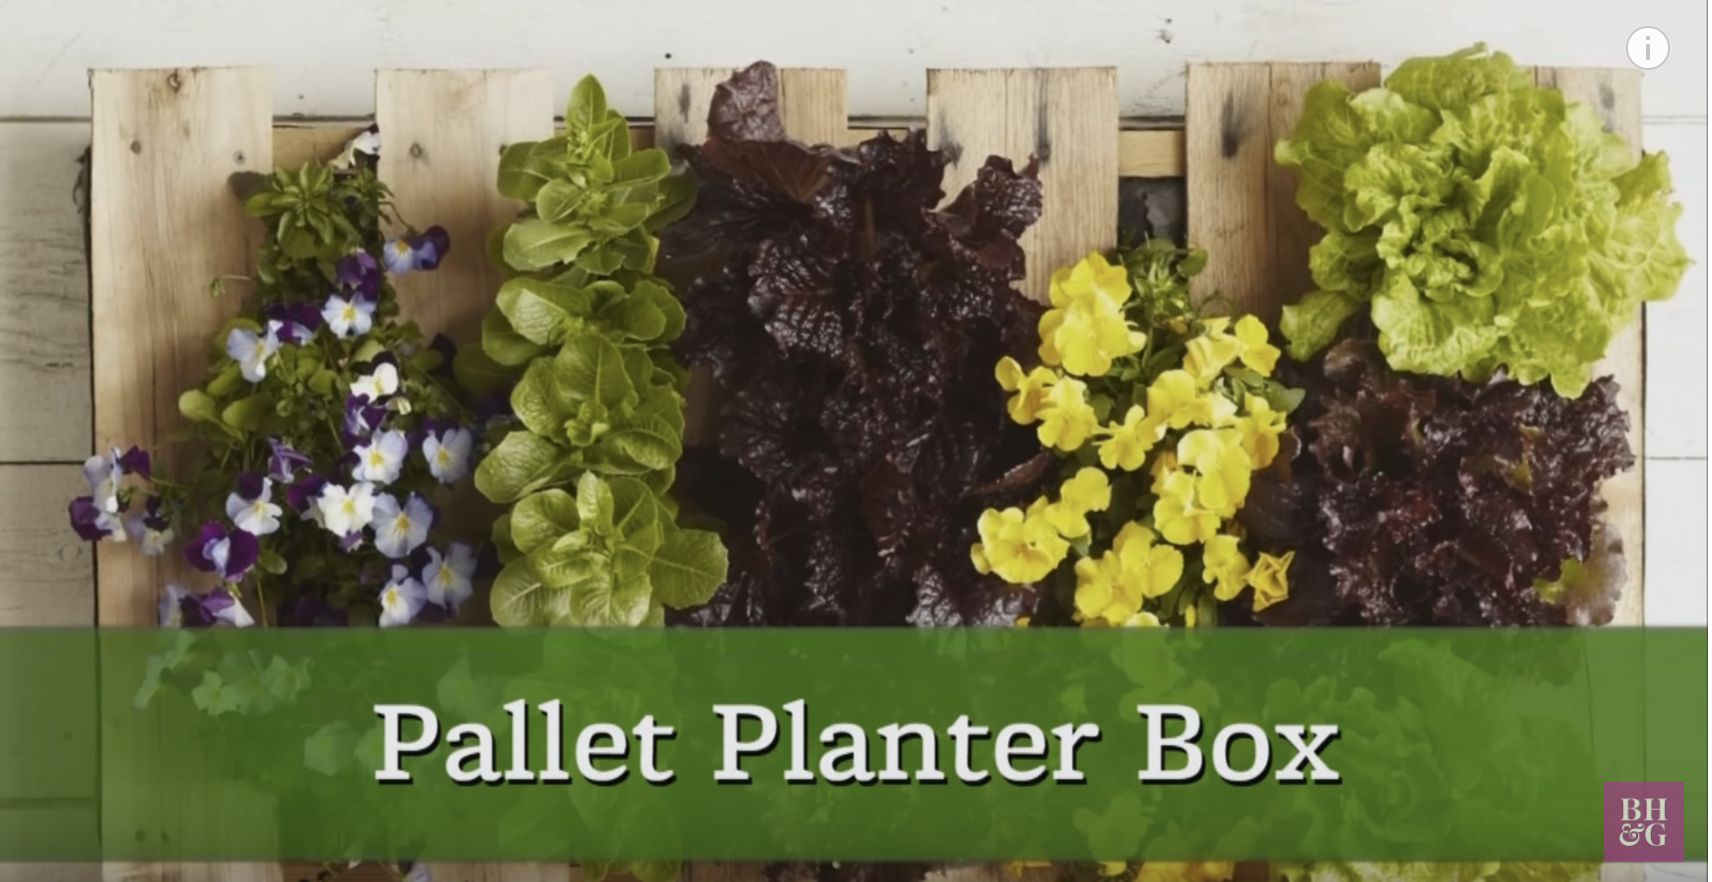 f5d8704fe92fb26955cae3fe81f8ee05 - Better Homes And Gardens Pallet Planter Box